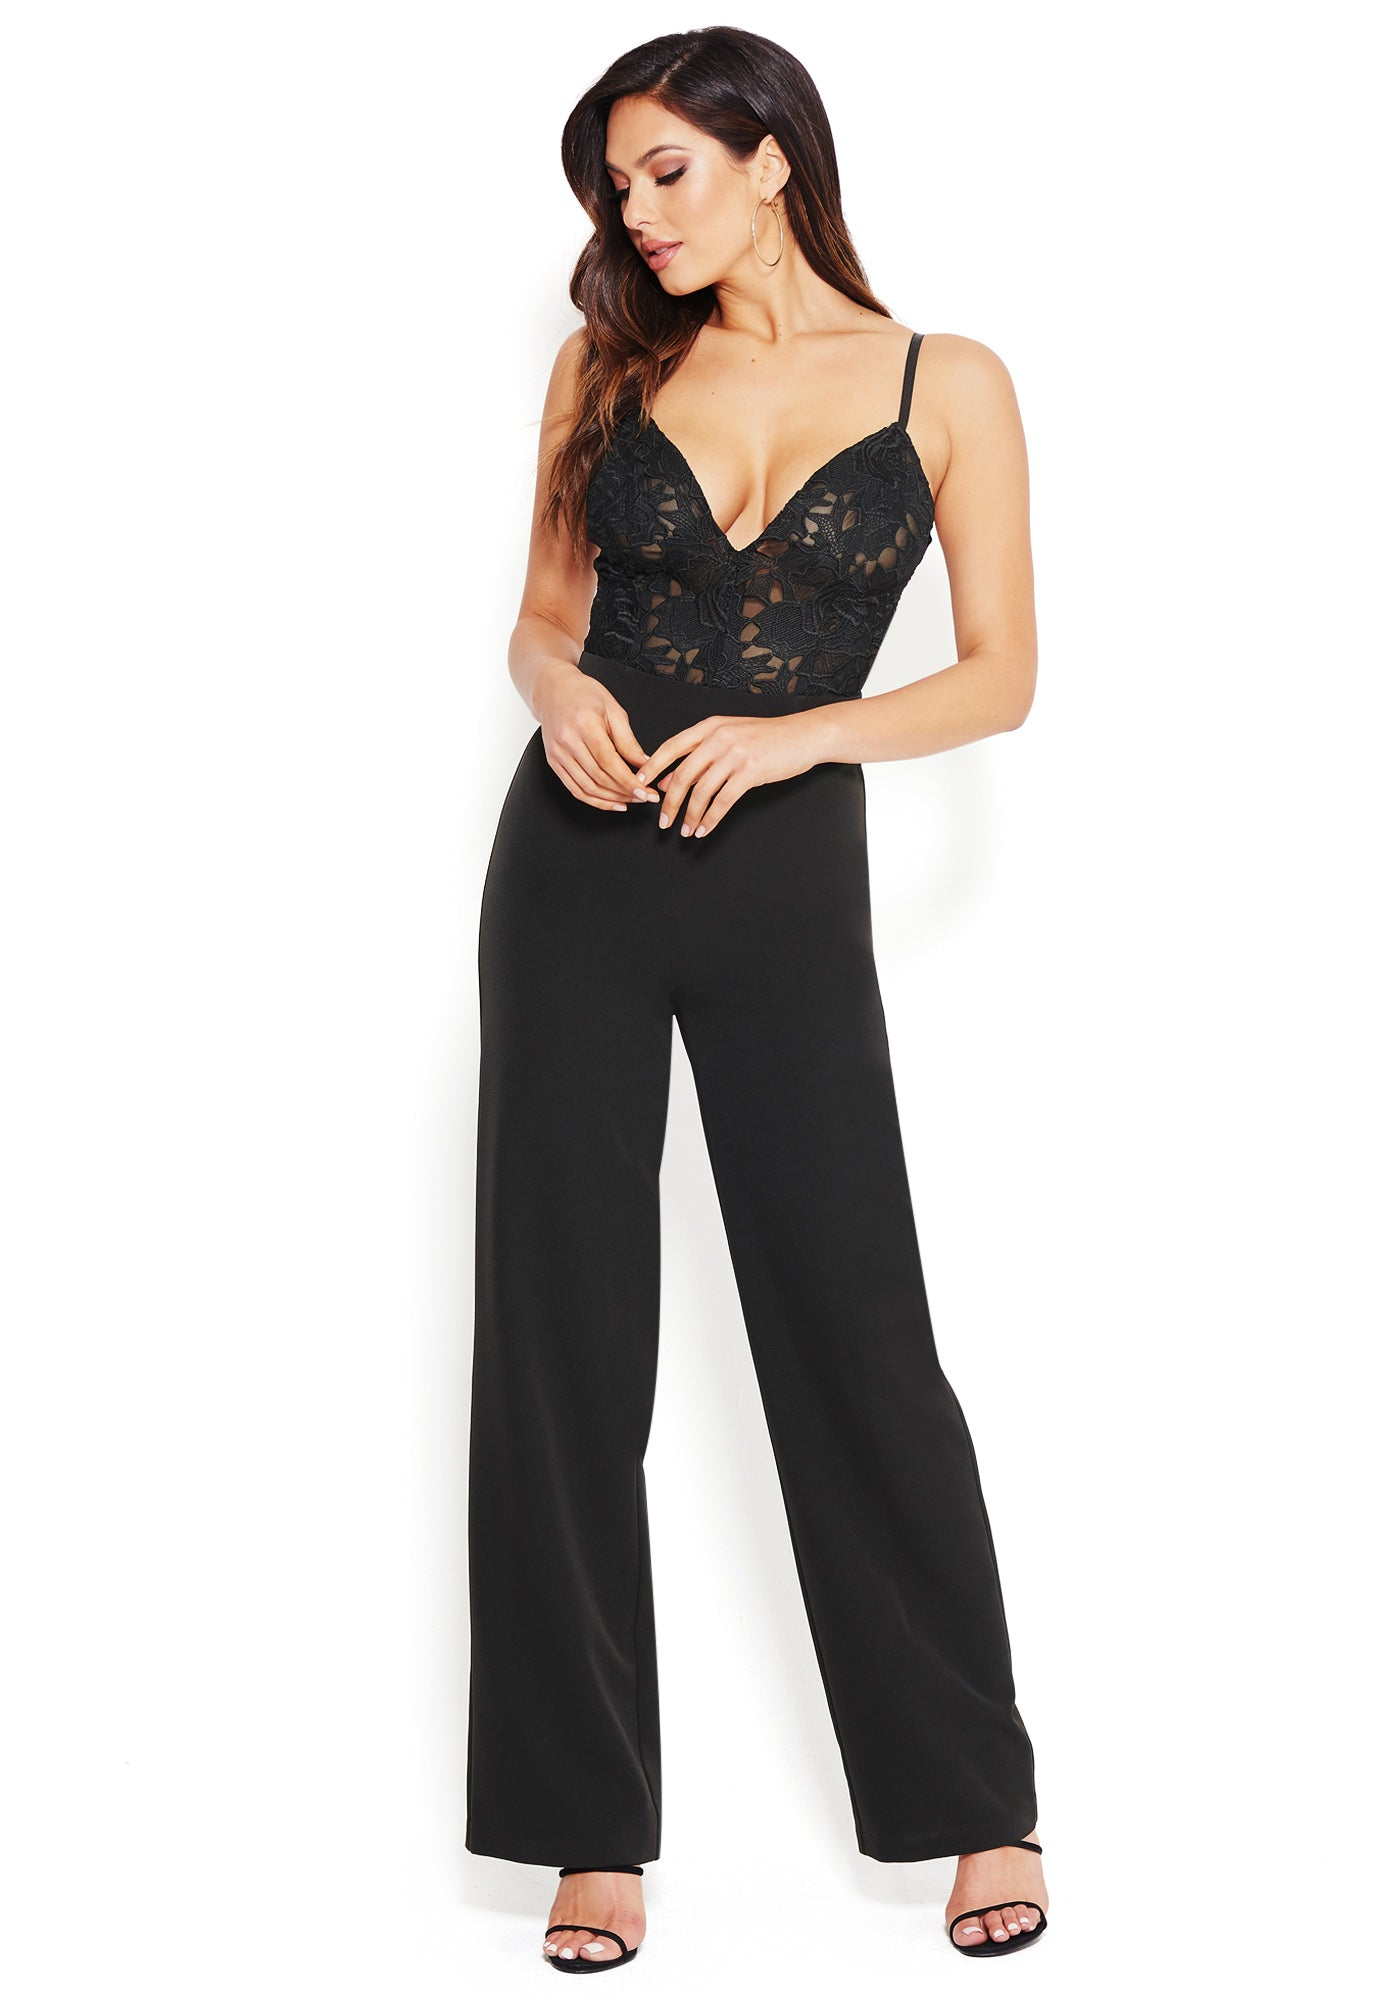 Bebe Women's Embroidered Lace Jumpsuit, Size 00 in Black